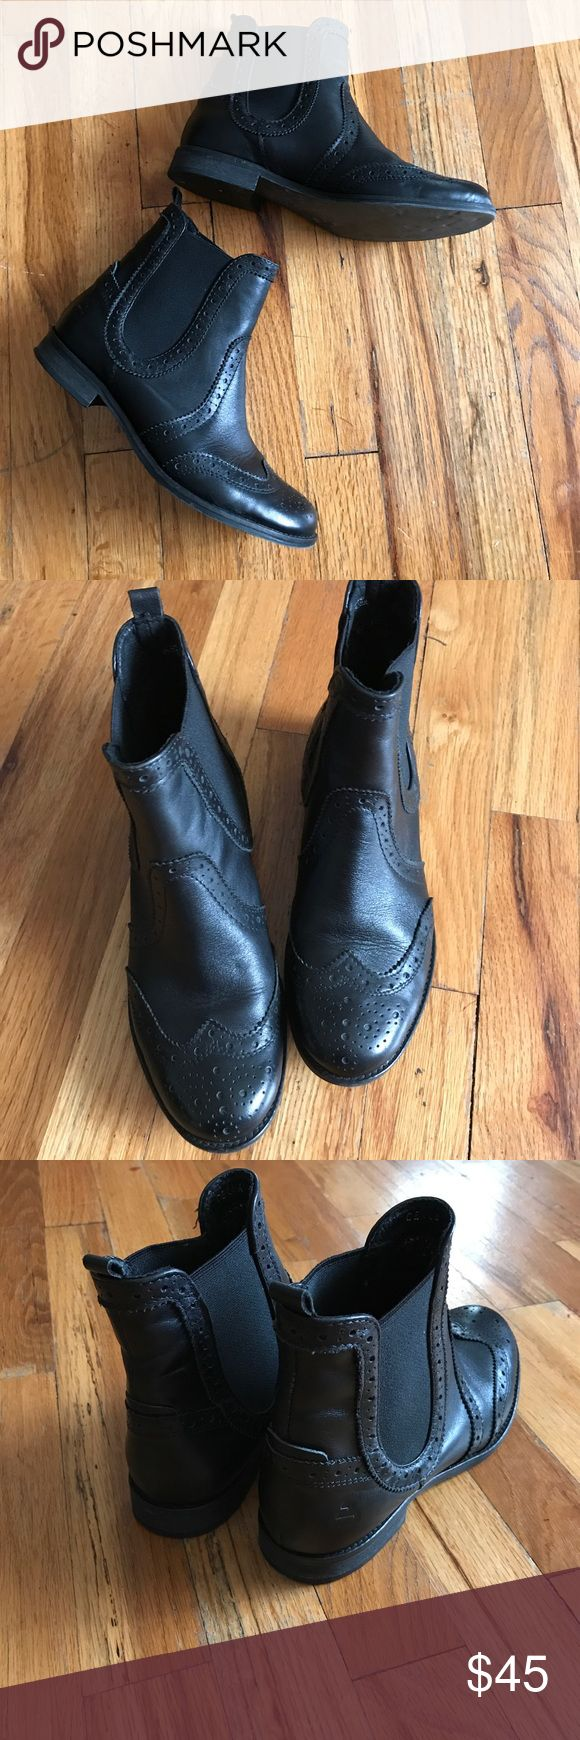 Bull boxer size 37 Bull boxer pull on leather bootie size 37 original retail $132 Bull Boxer Shoes Ankle Boots & Booties